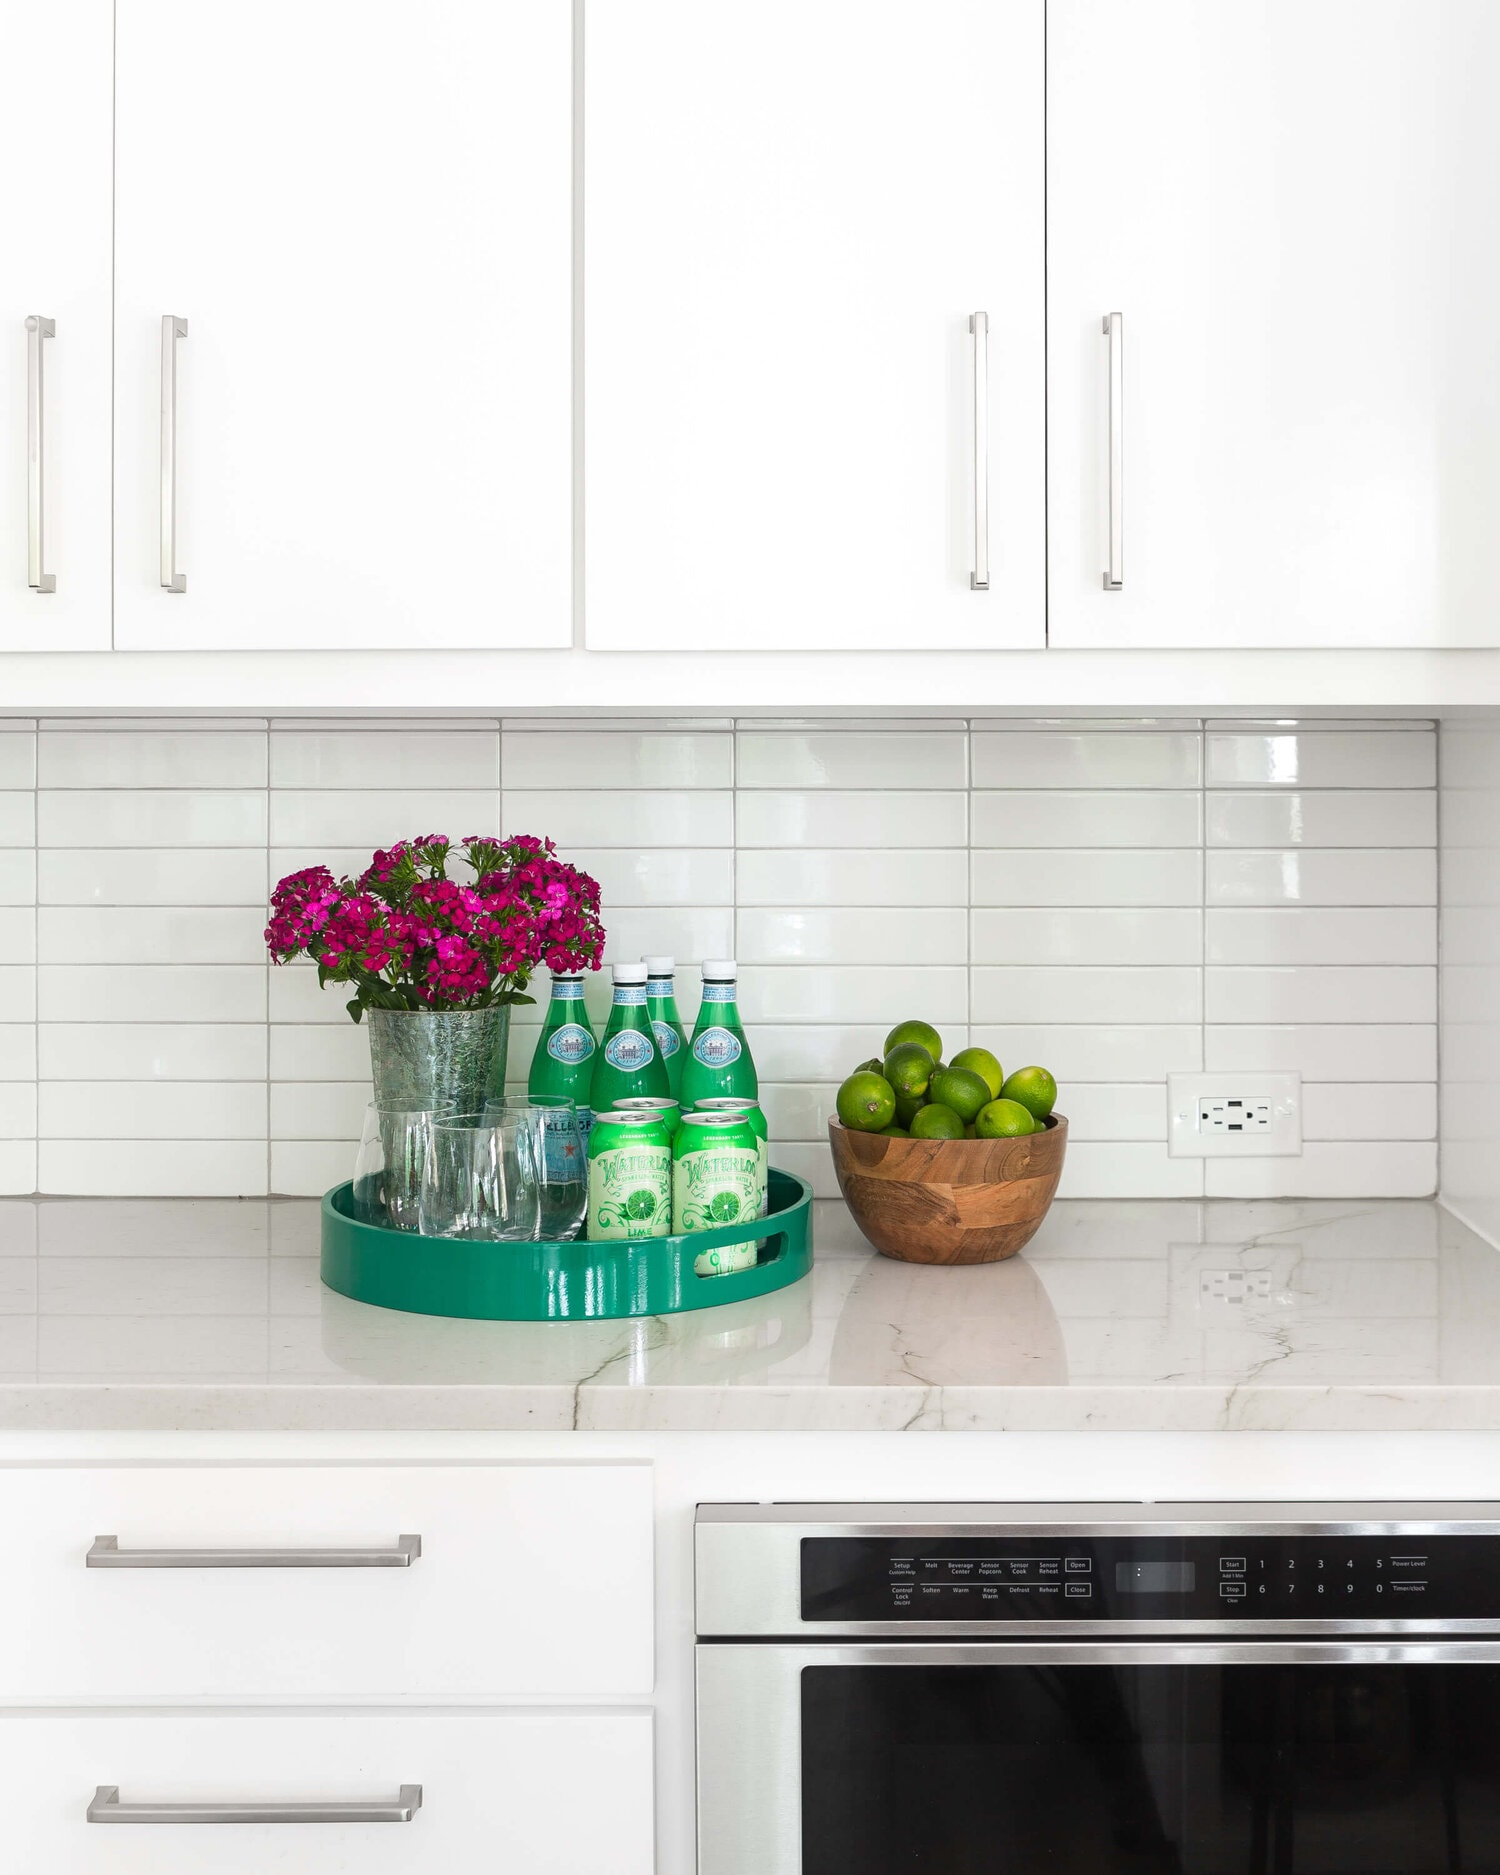 Carla Aston's helpful tips on How to deal with electrical outlets in backsplashes